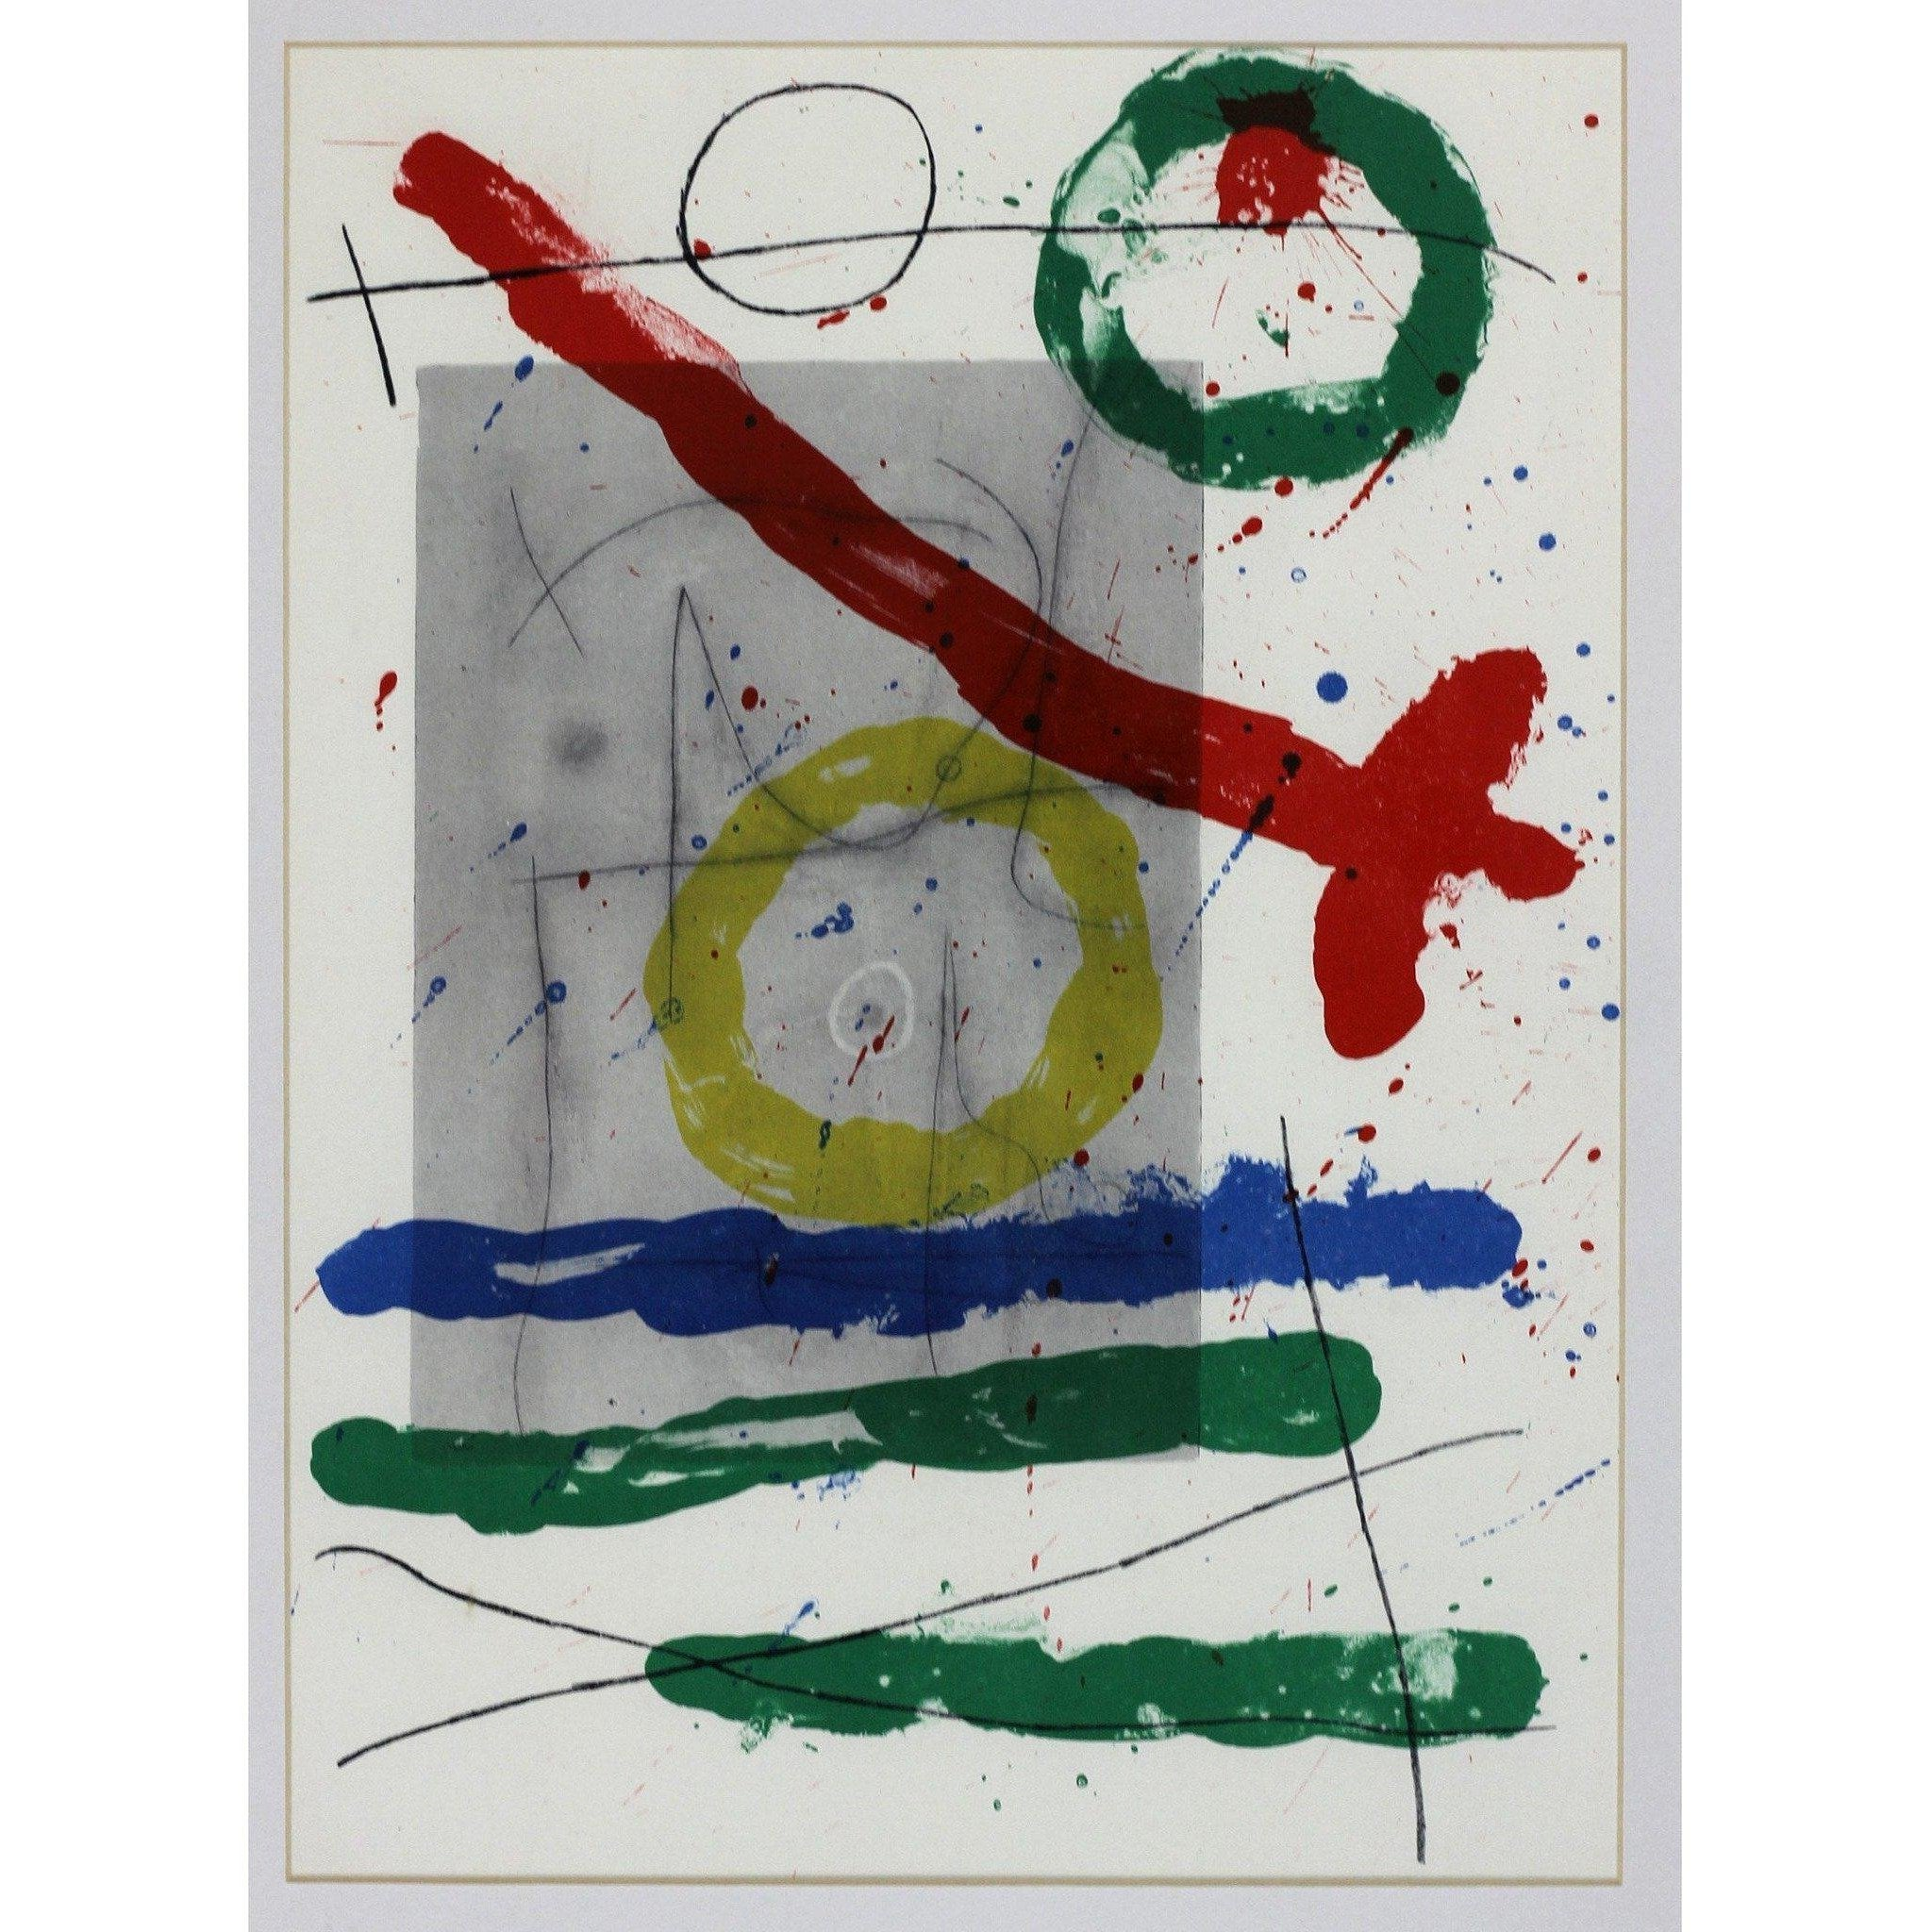 Joan Miro Ltd Ed Lithograph - Derrier le mirroir (G)